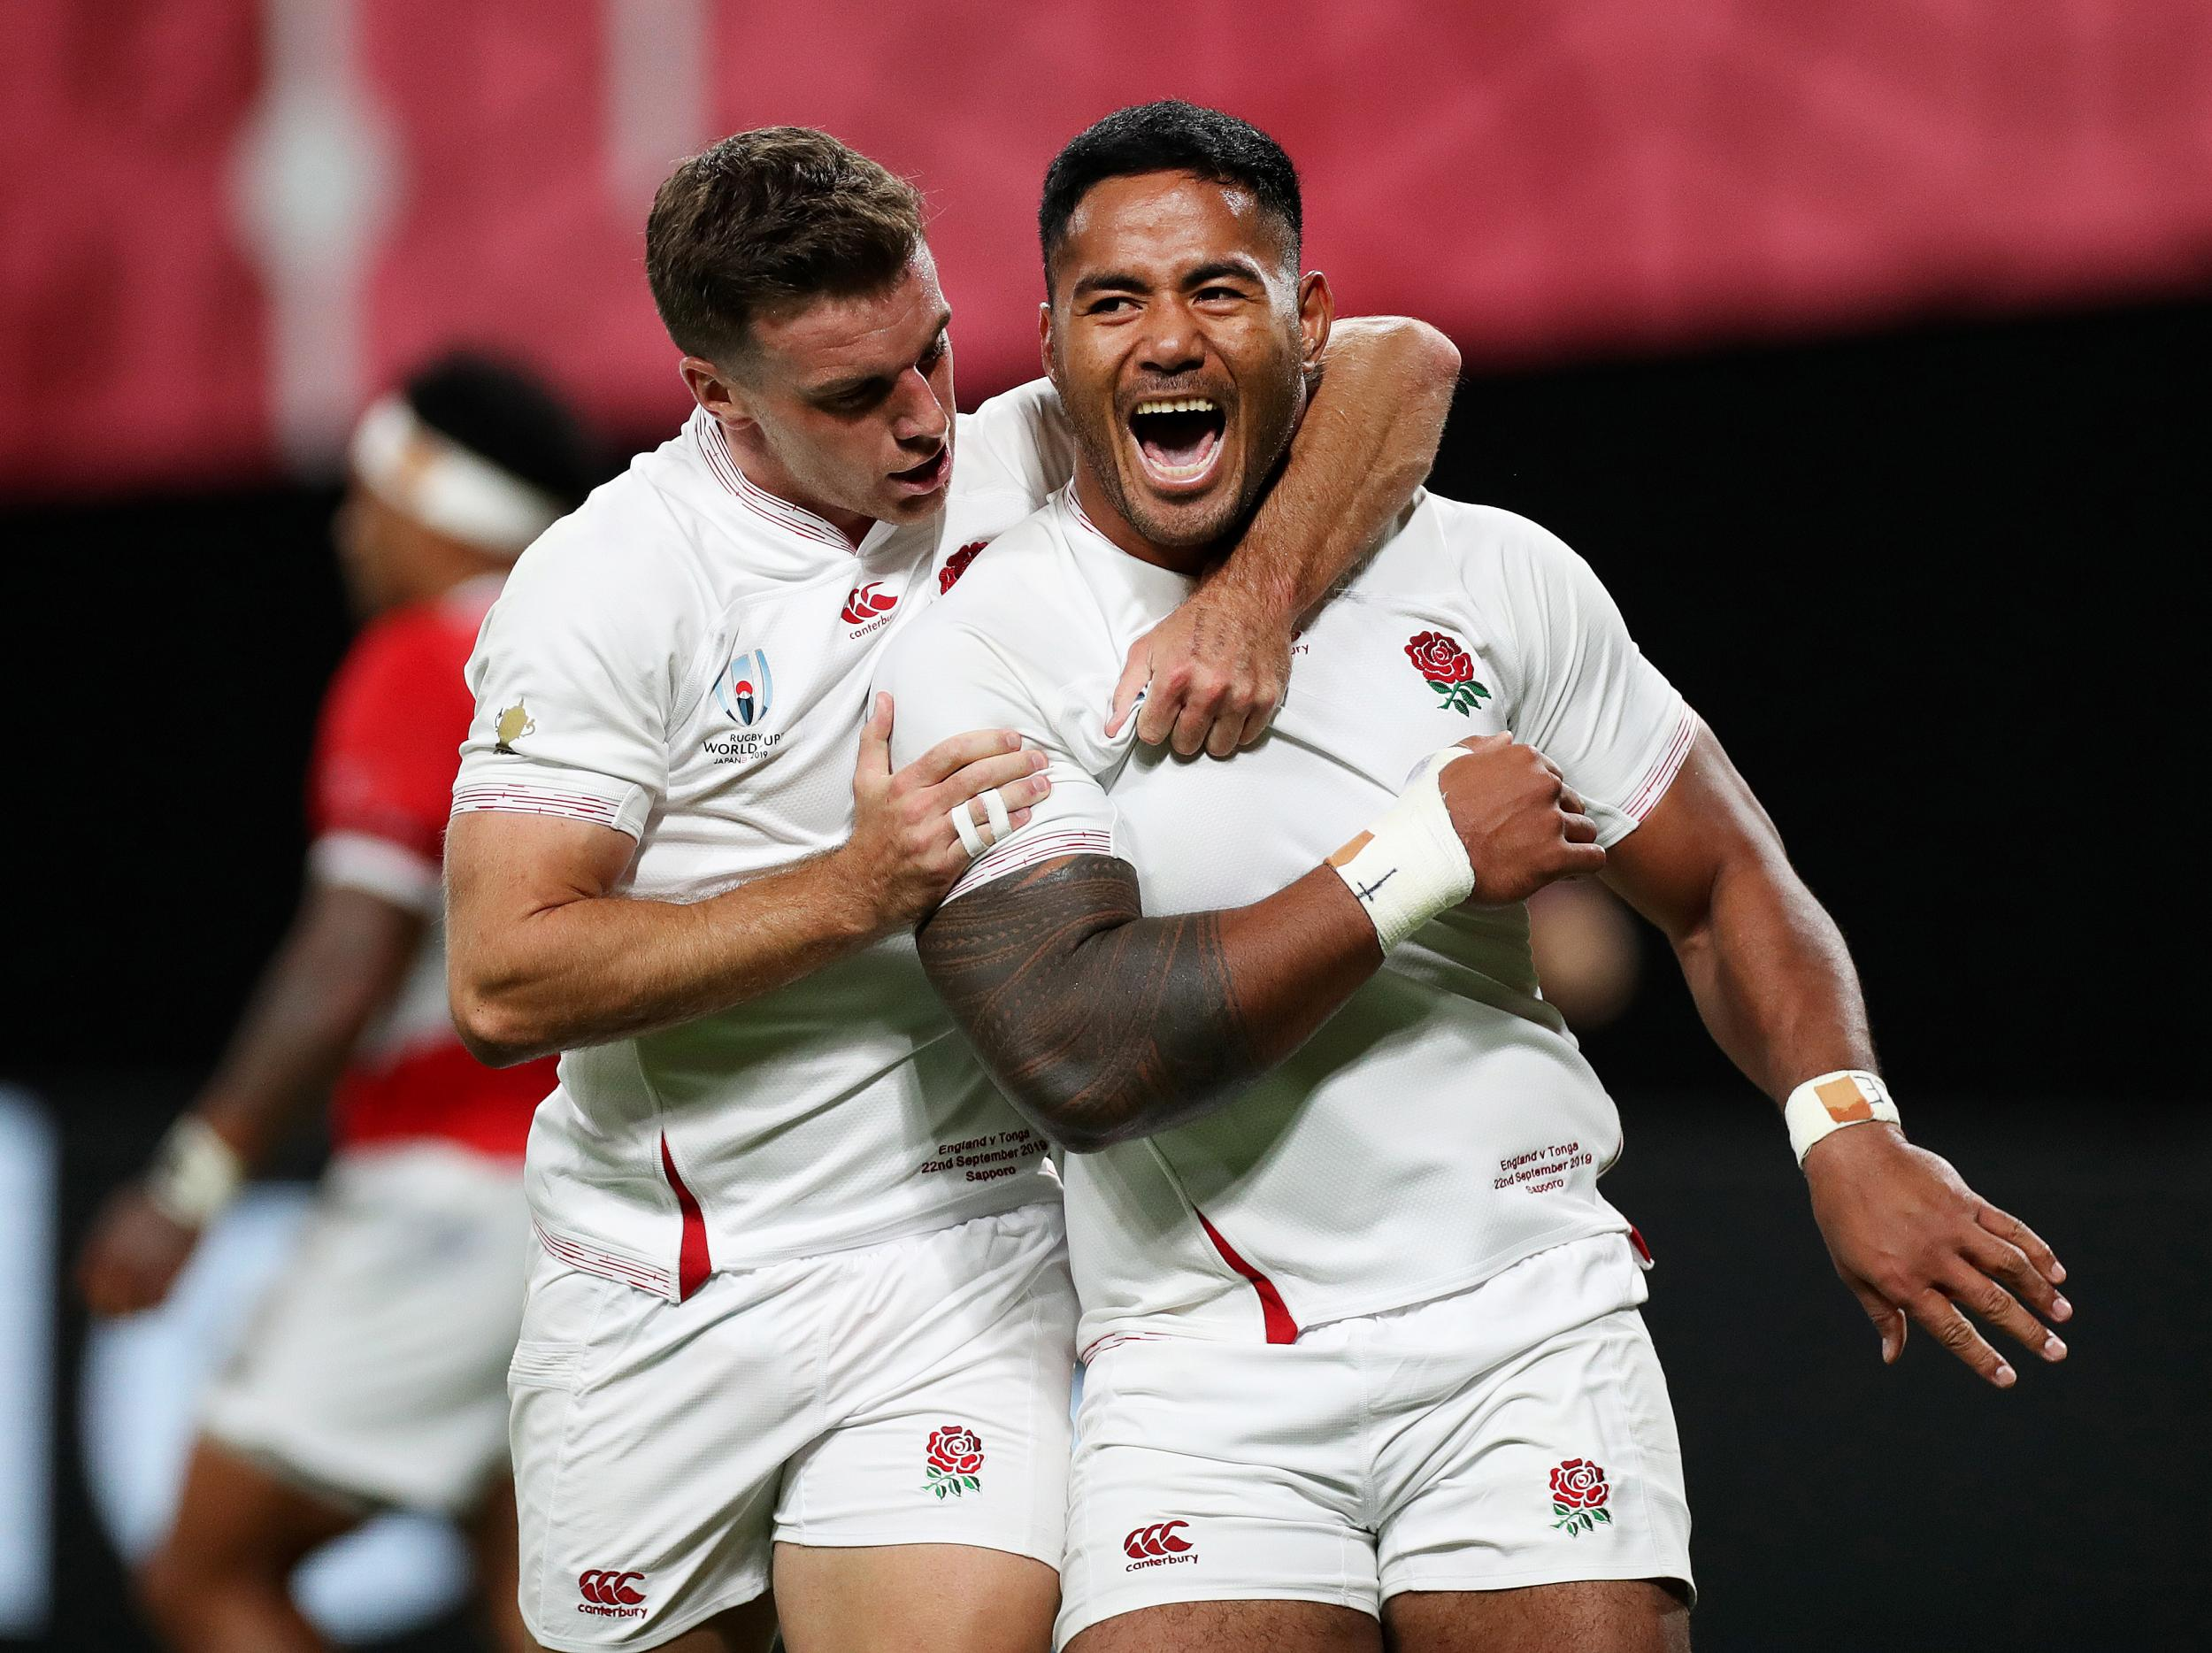 Rugby World Cup 2019 bonus points: How does the rule work and how many tries must teams score?